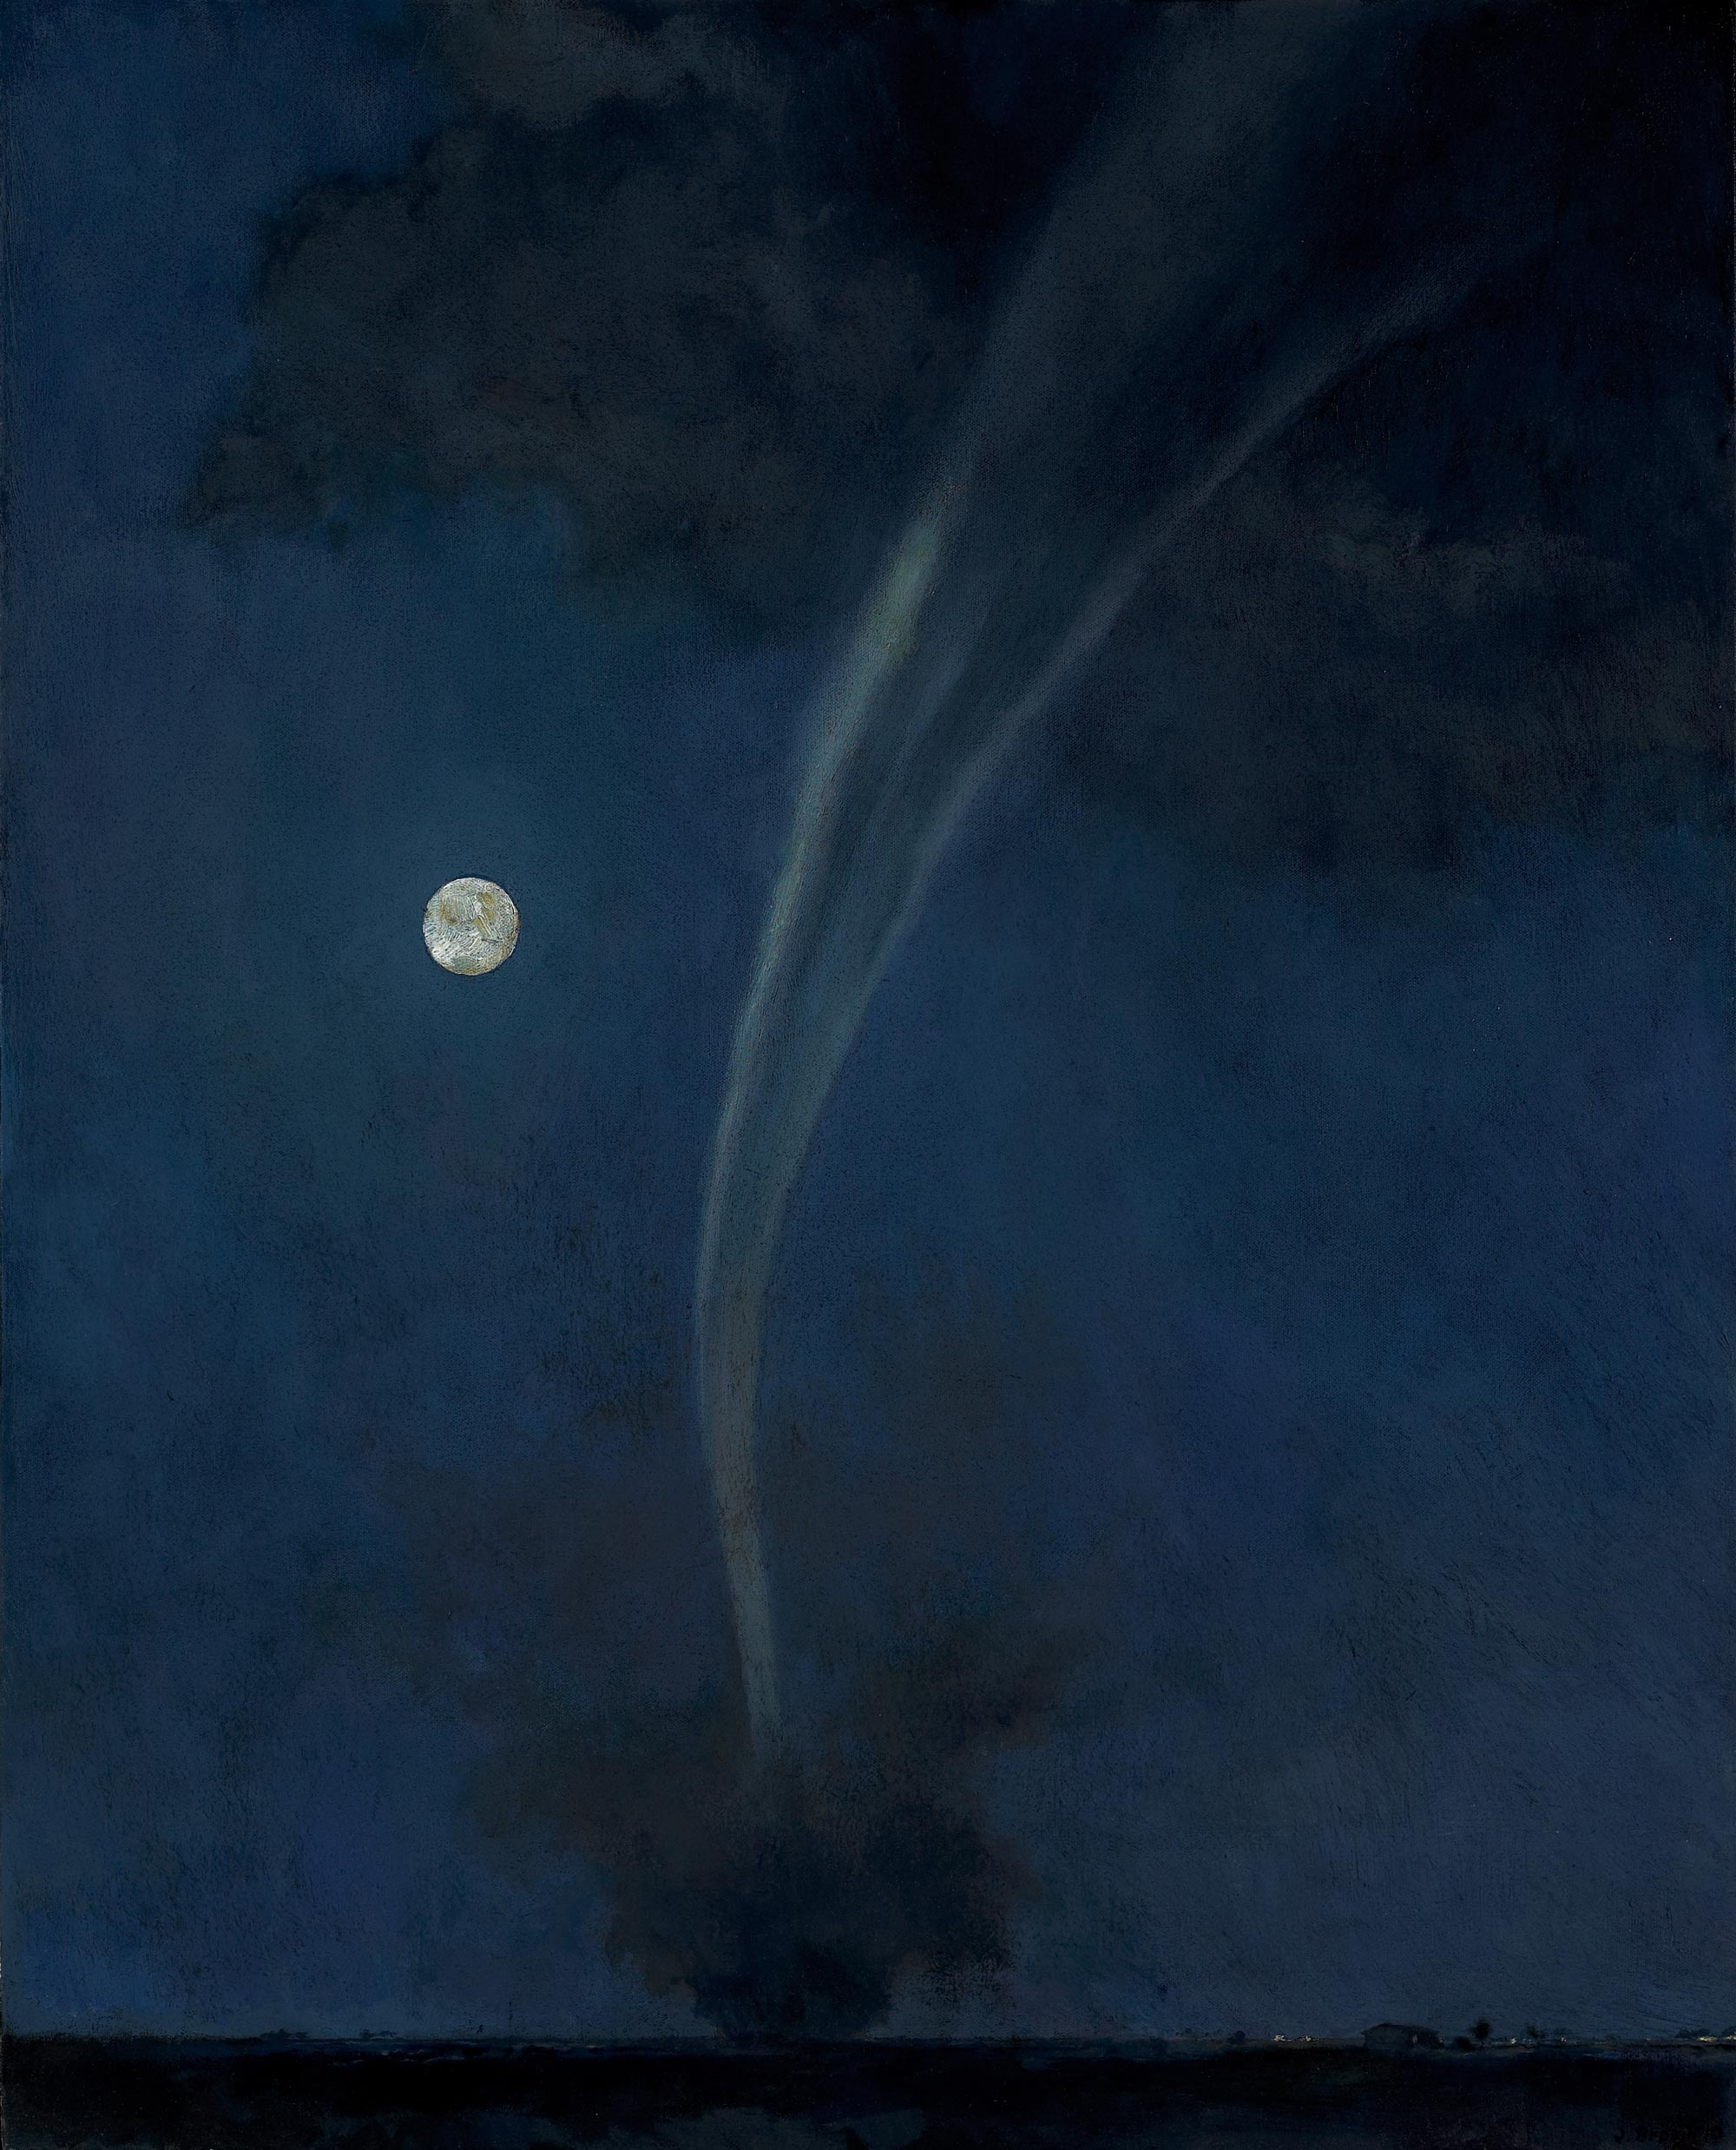 Tornado and Moon, 36 x 29, oil on canvas, 2010